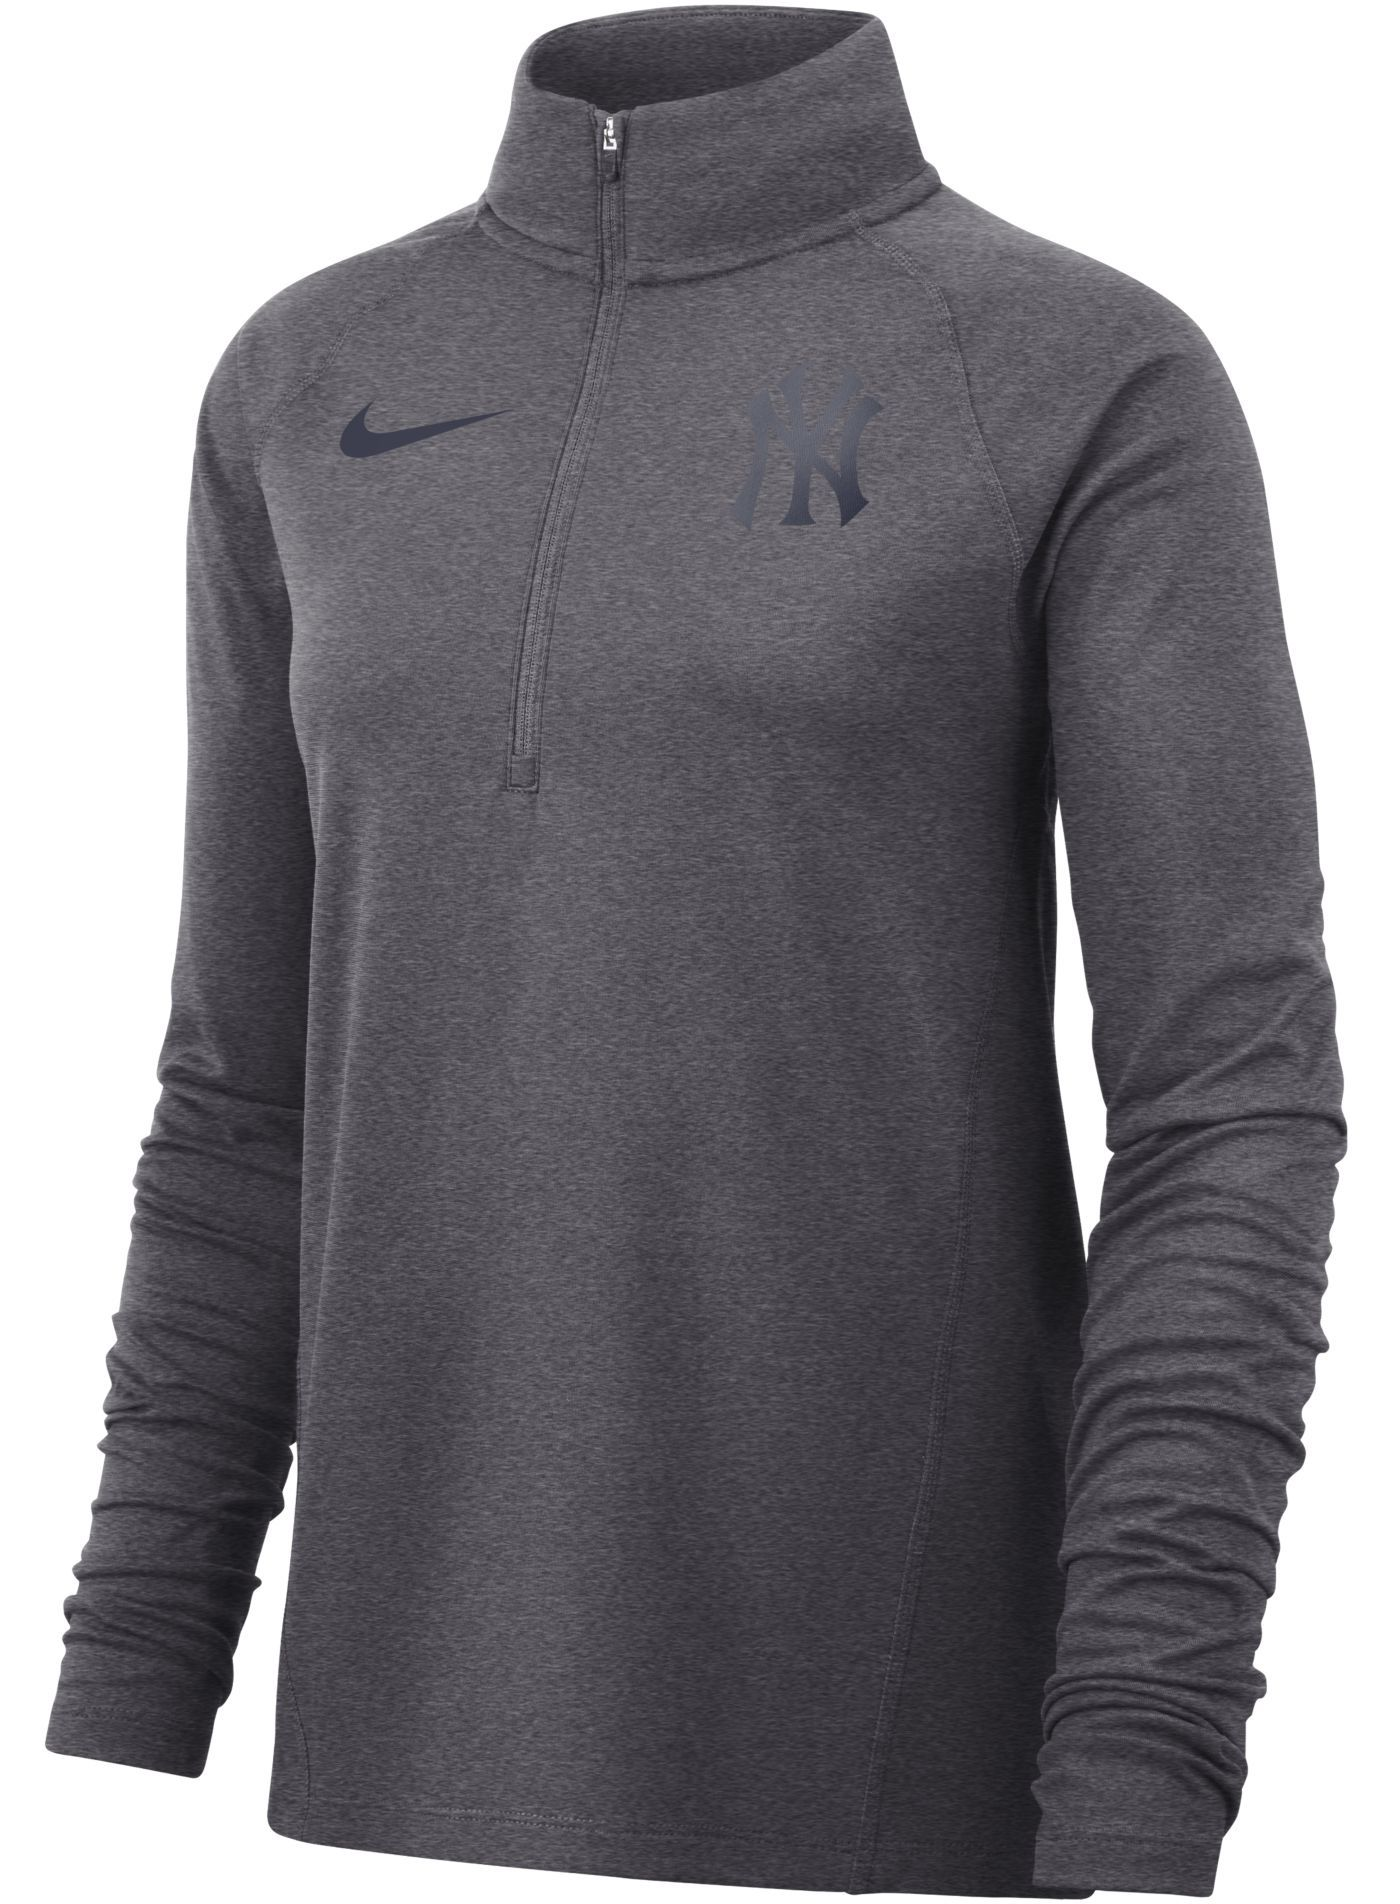 Nike Women's New York Yankees Dri-FIT Half-Zip Pullover